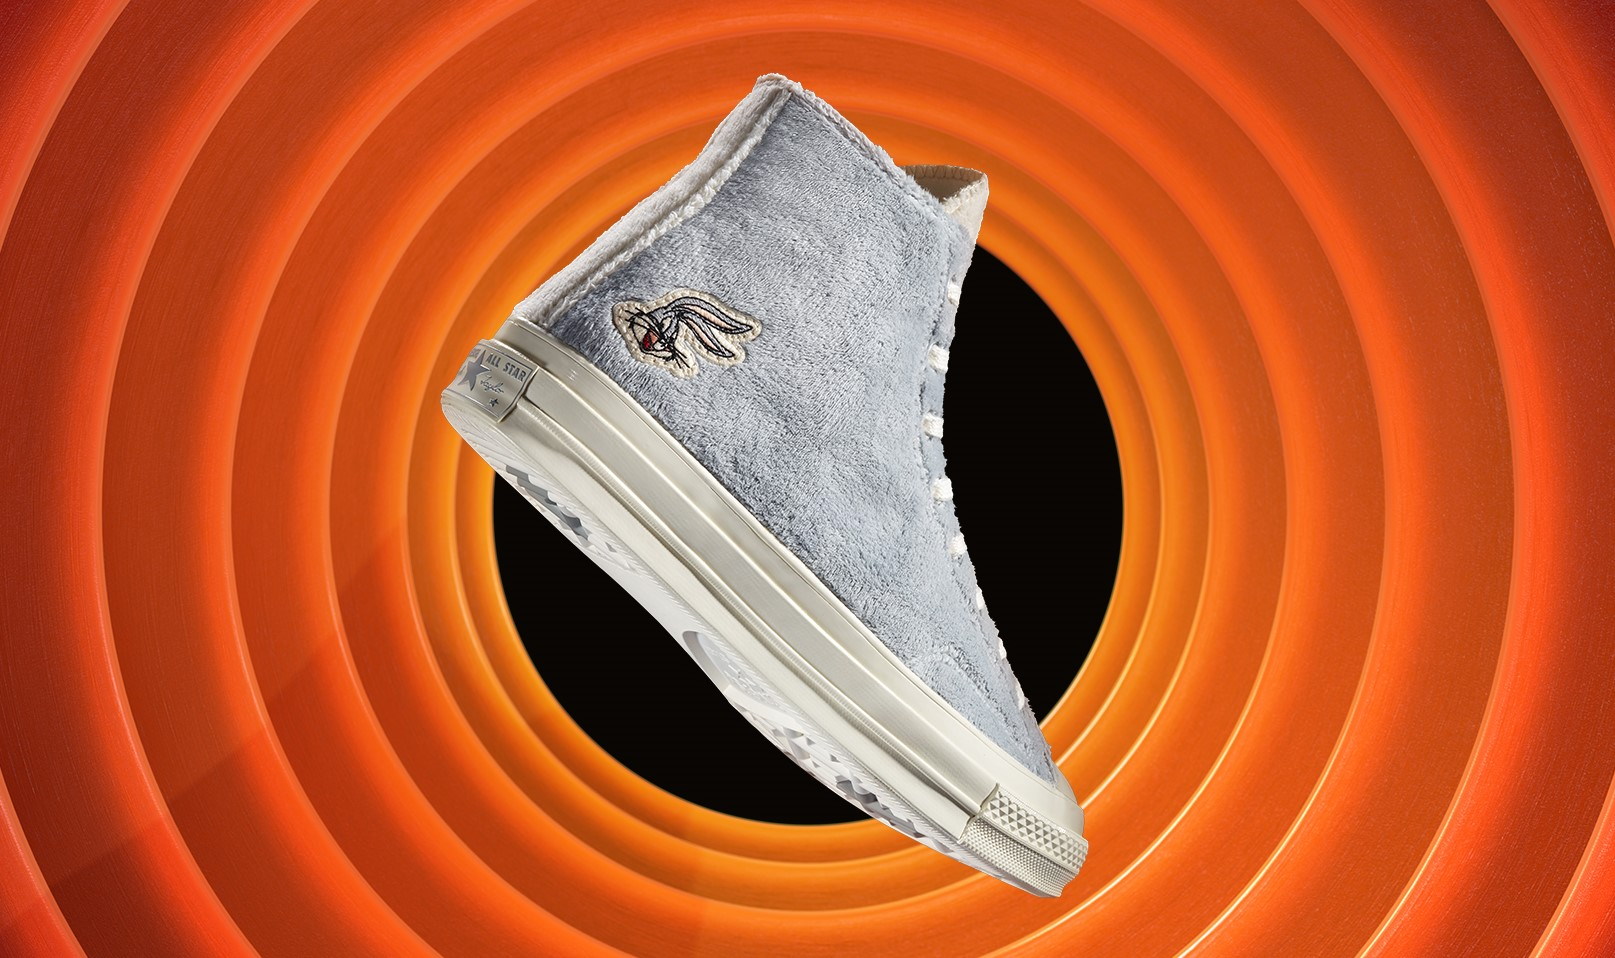 Converse celebrates Bugs Bunny's 80th anniversary with a shoe collection 16